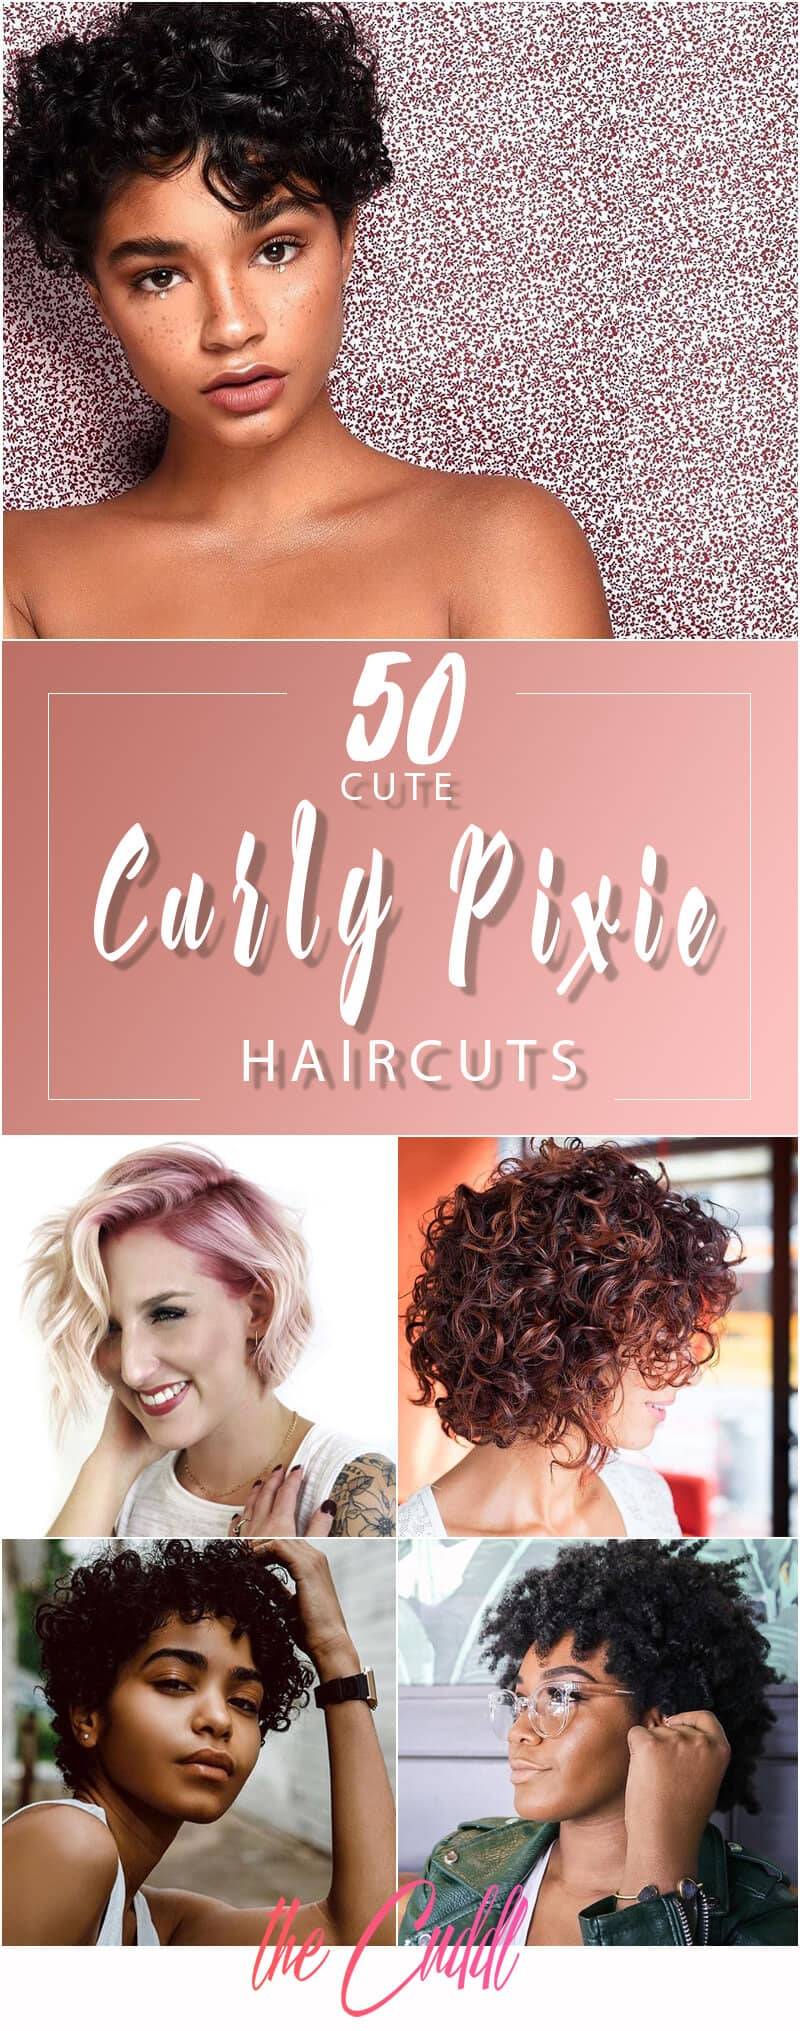 10 Bold Curly Pixie Cut Ideas To Transform Your Style in 10